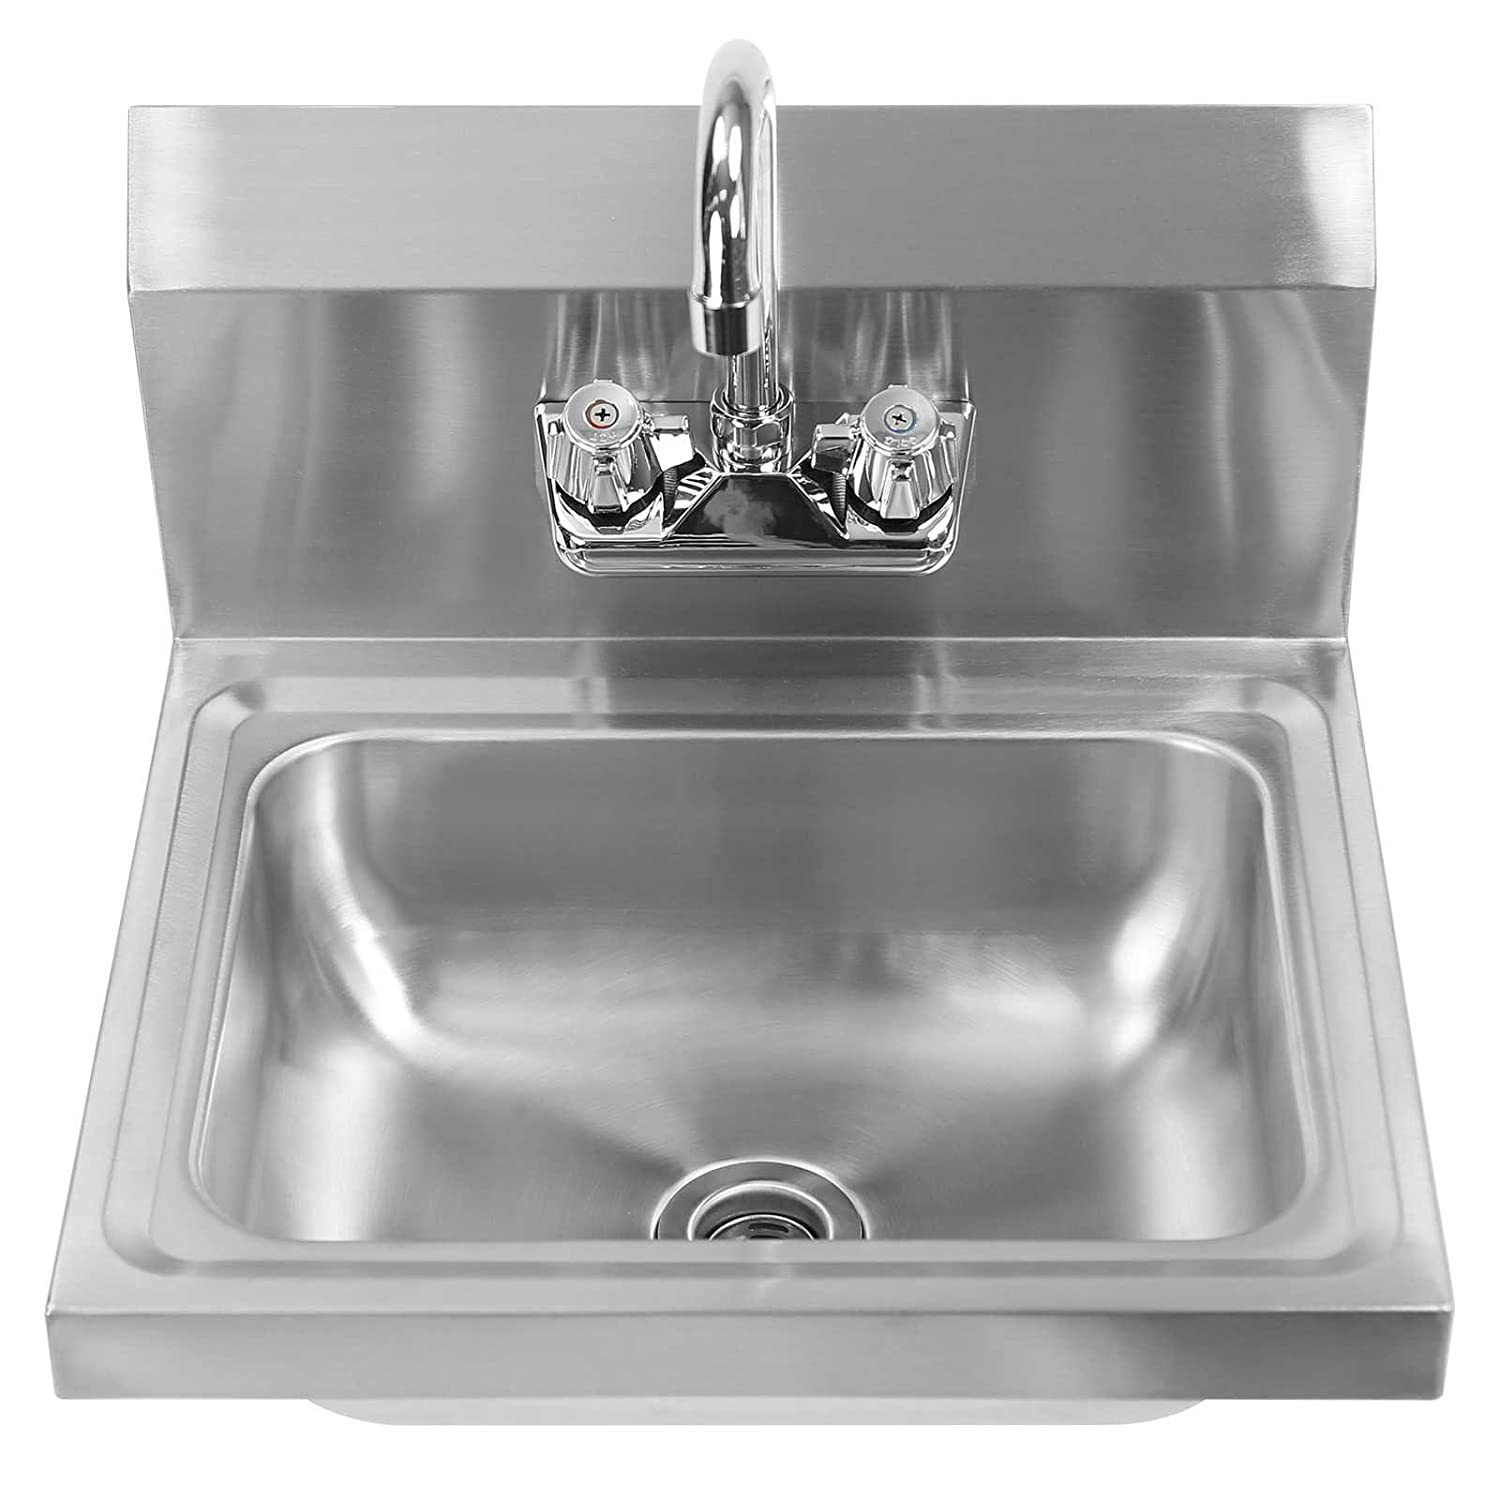 Gridmann Commercial NSF Stainless Steel Sink   Wall Mount Hand Washing Basin  With Faucet     Amazon.com